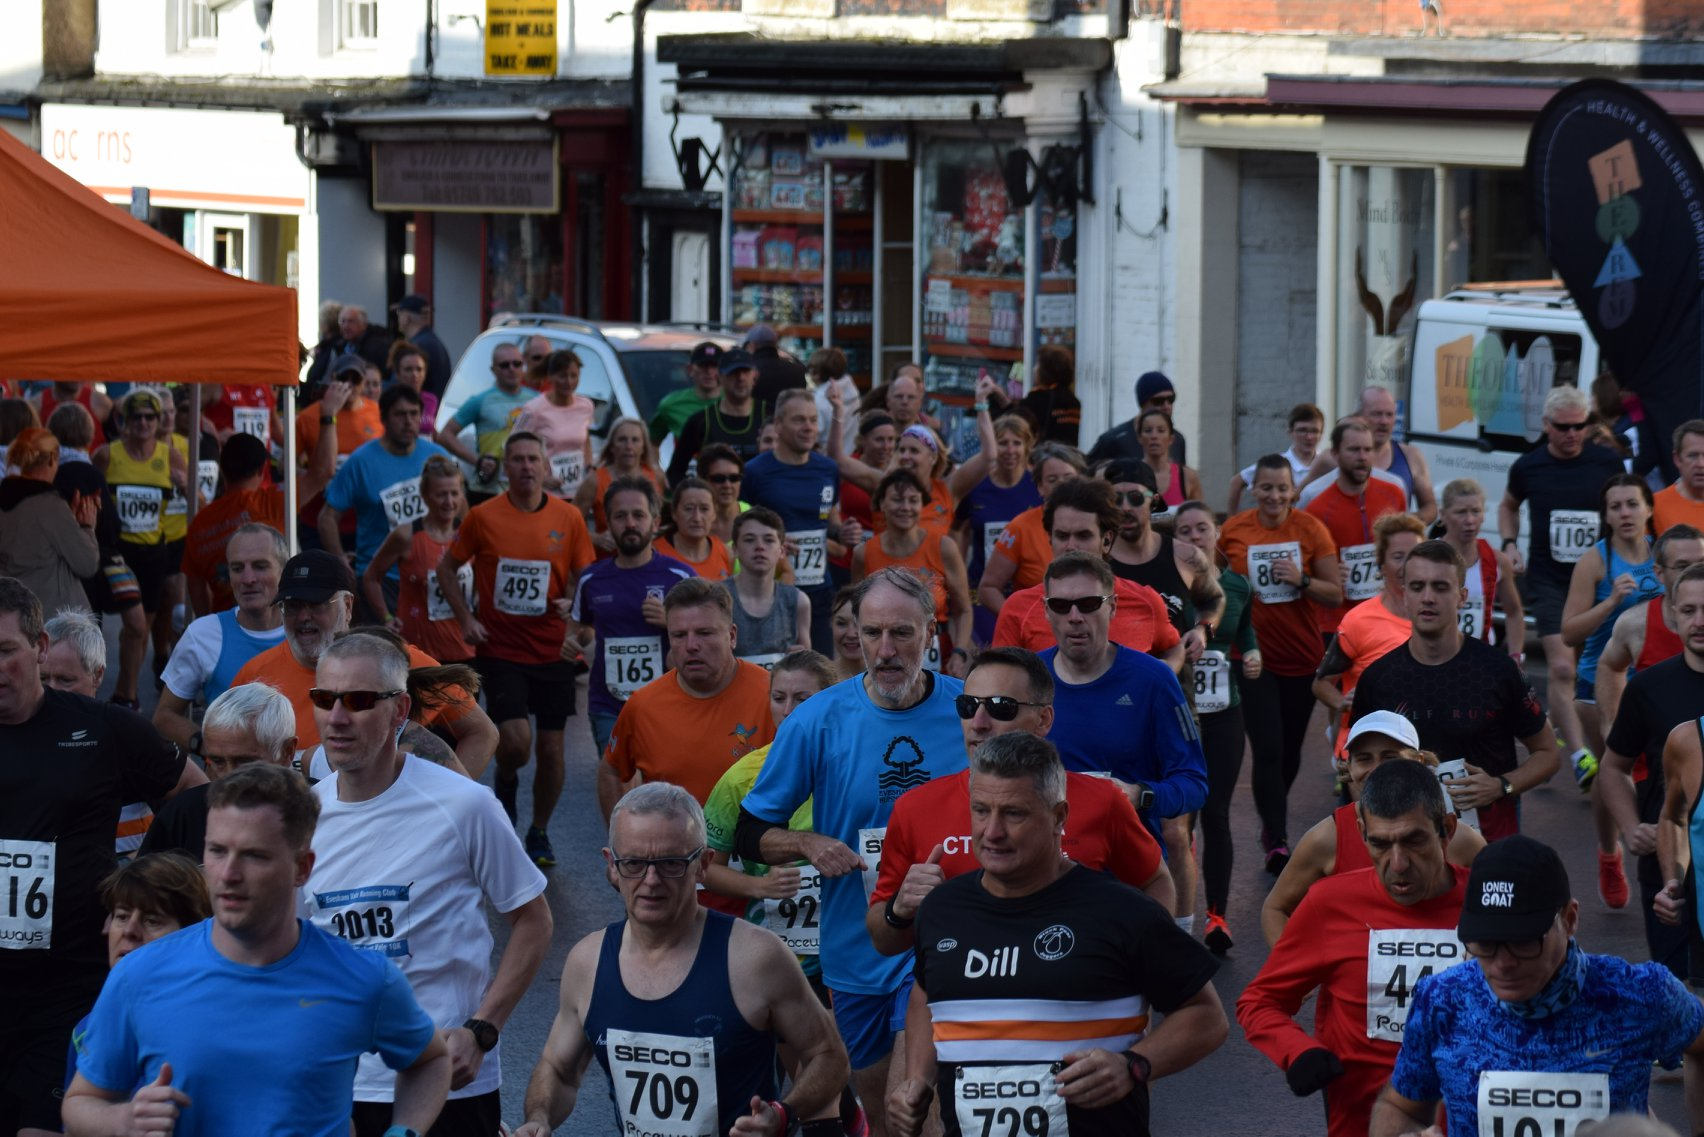 Seco Alcester 10k - cover image